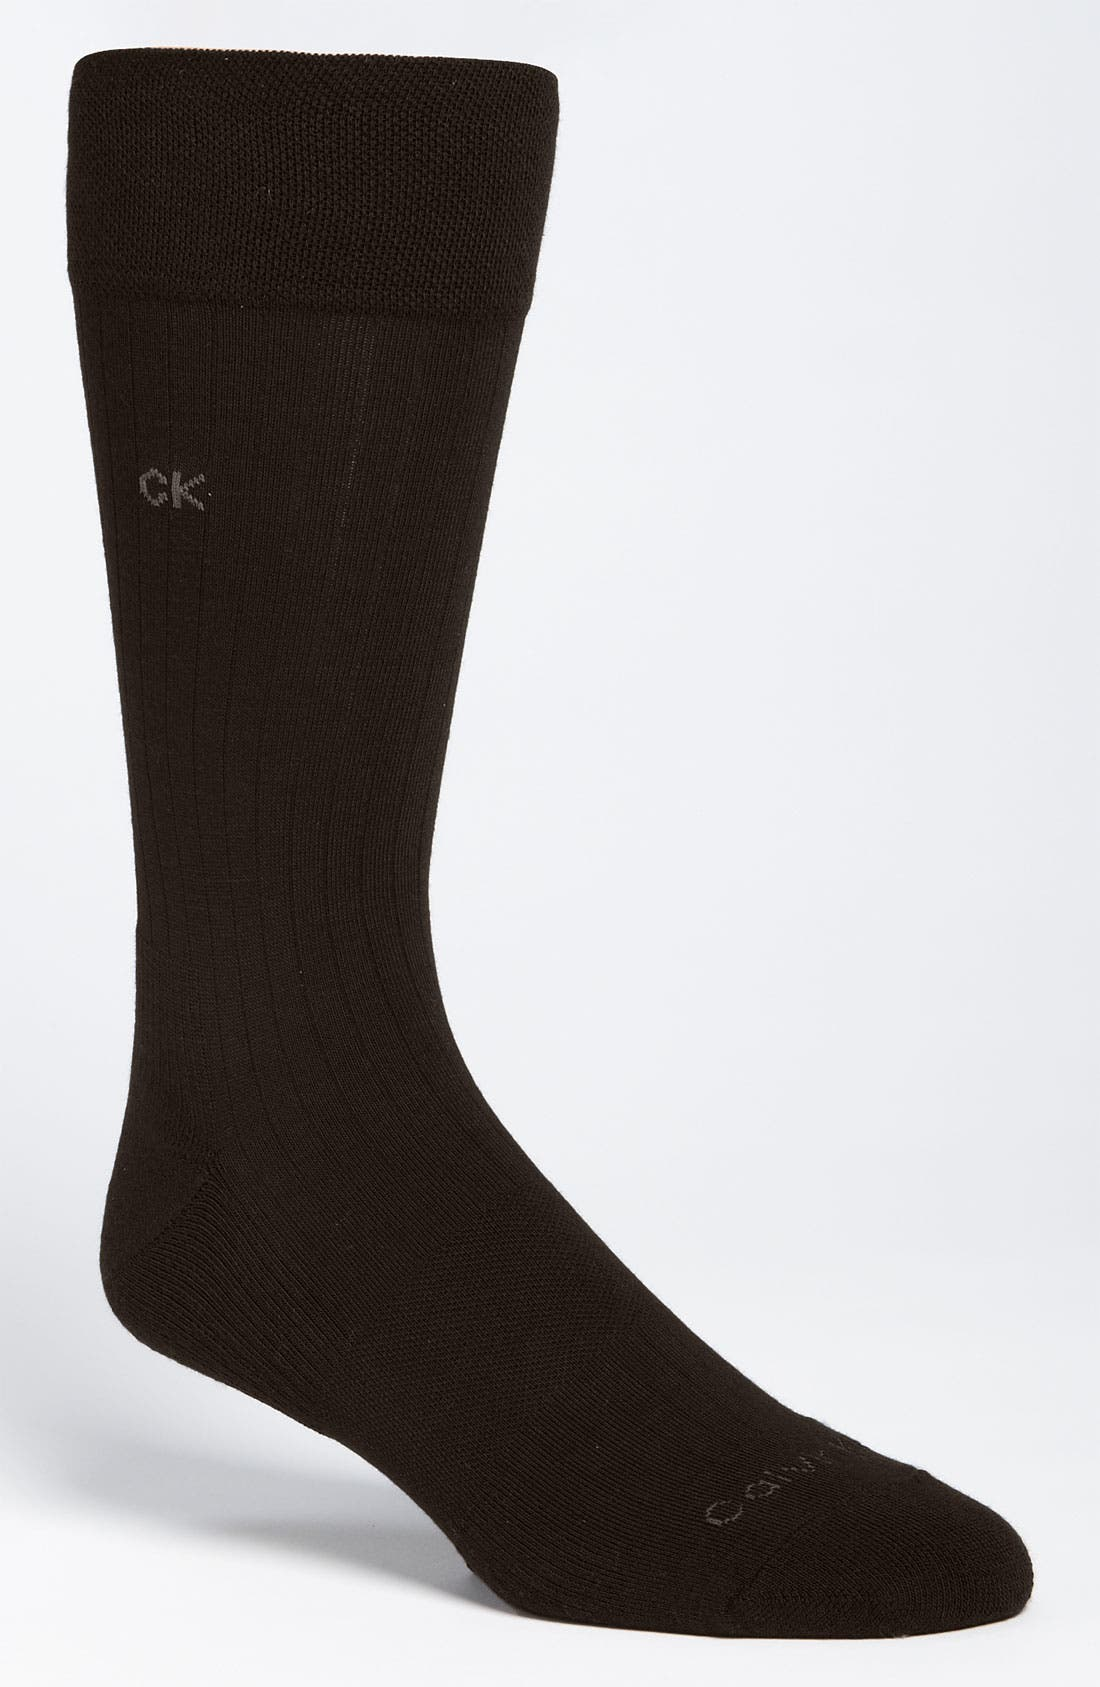 Main Image - Calvin Klein 'Ultra Fit' Socks